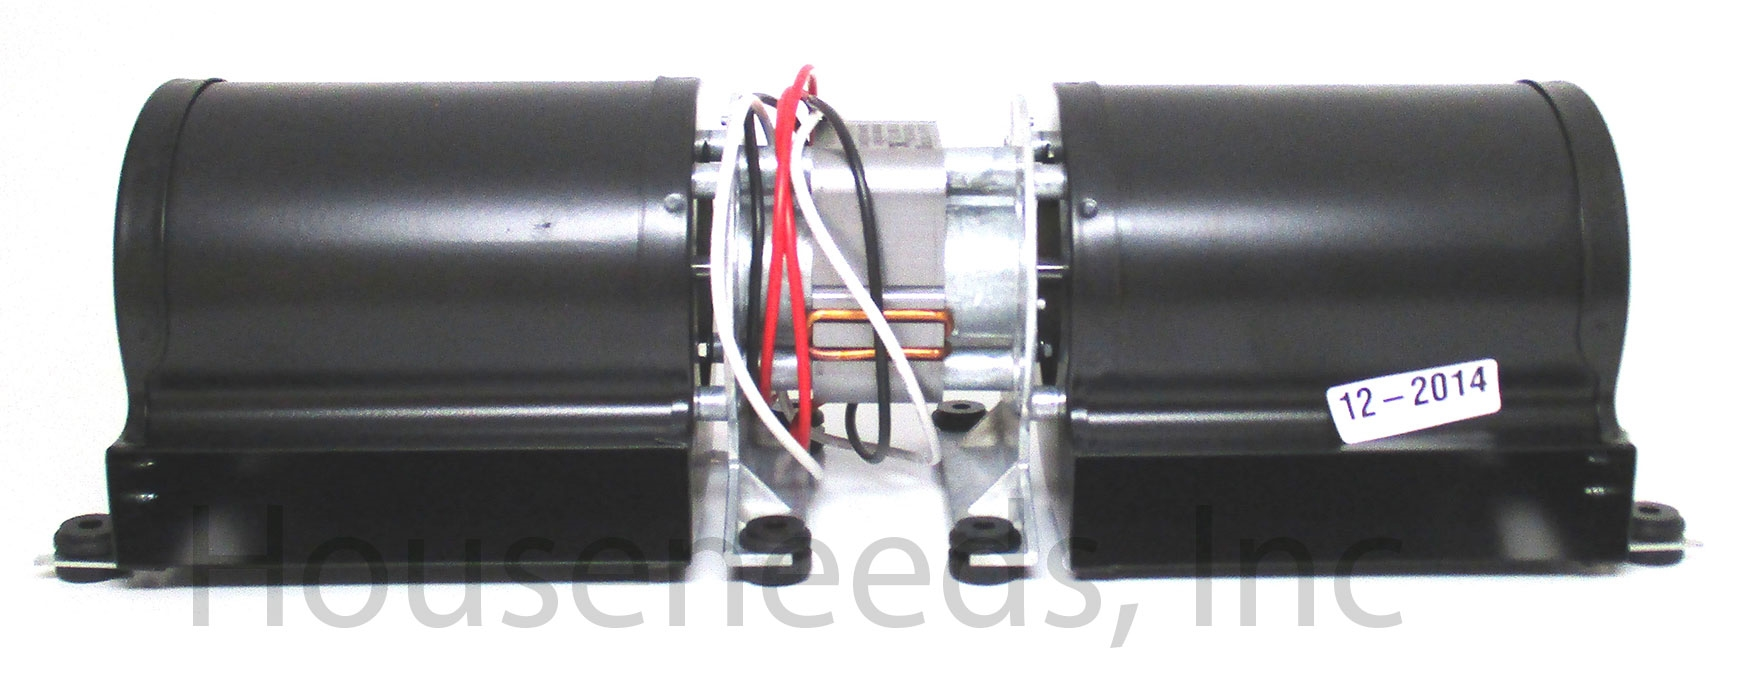 regency blower motor only with squirrel cage 910 157 p